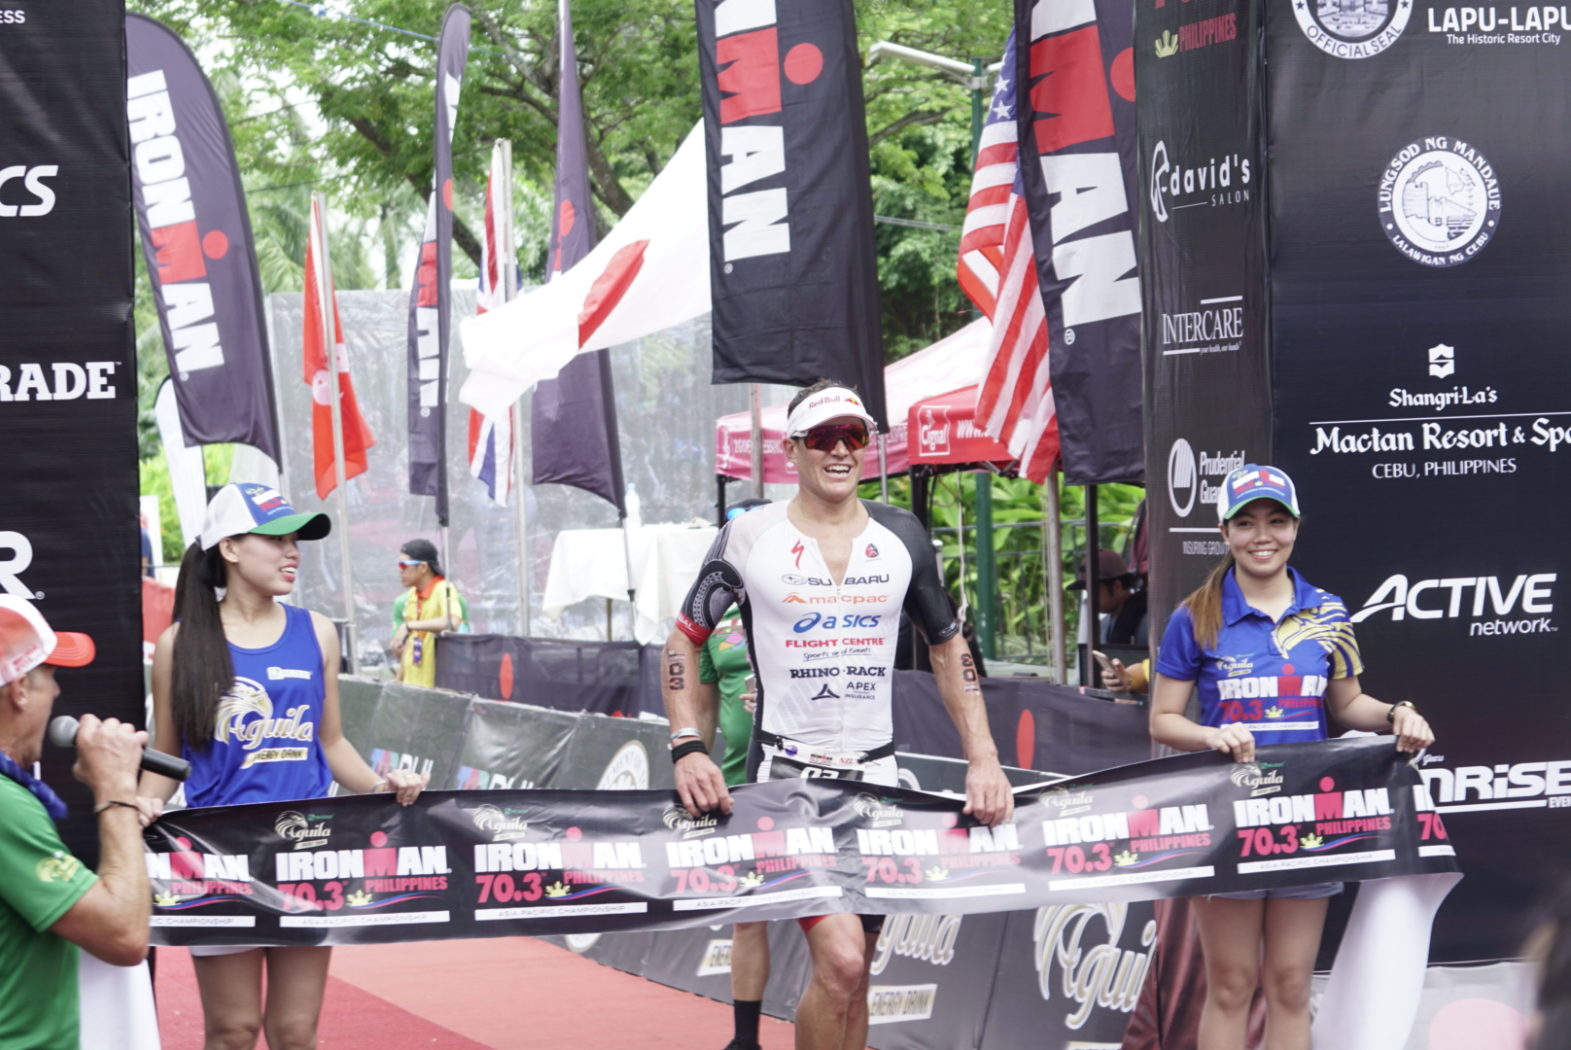 PODIUM FOR CURRIE AT IRONMAN 70.3 ASIA PACIFIC CHAMPIONSHIP